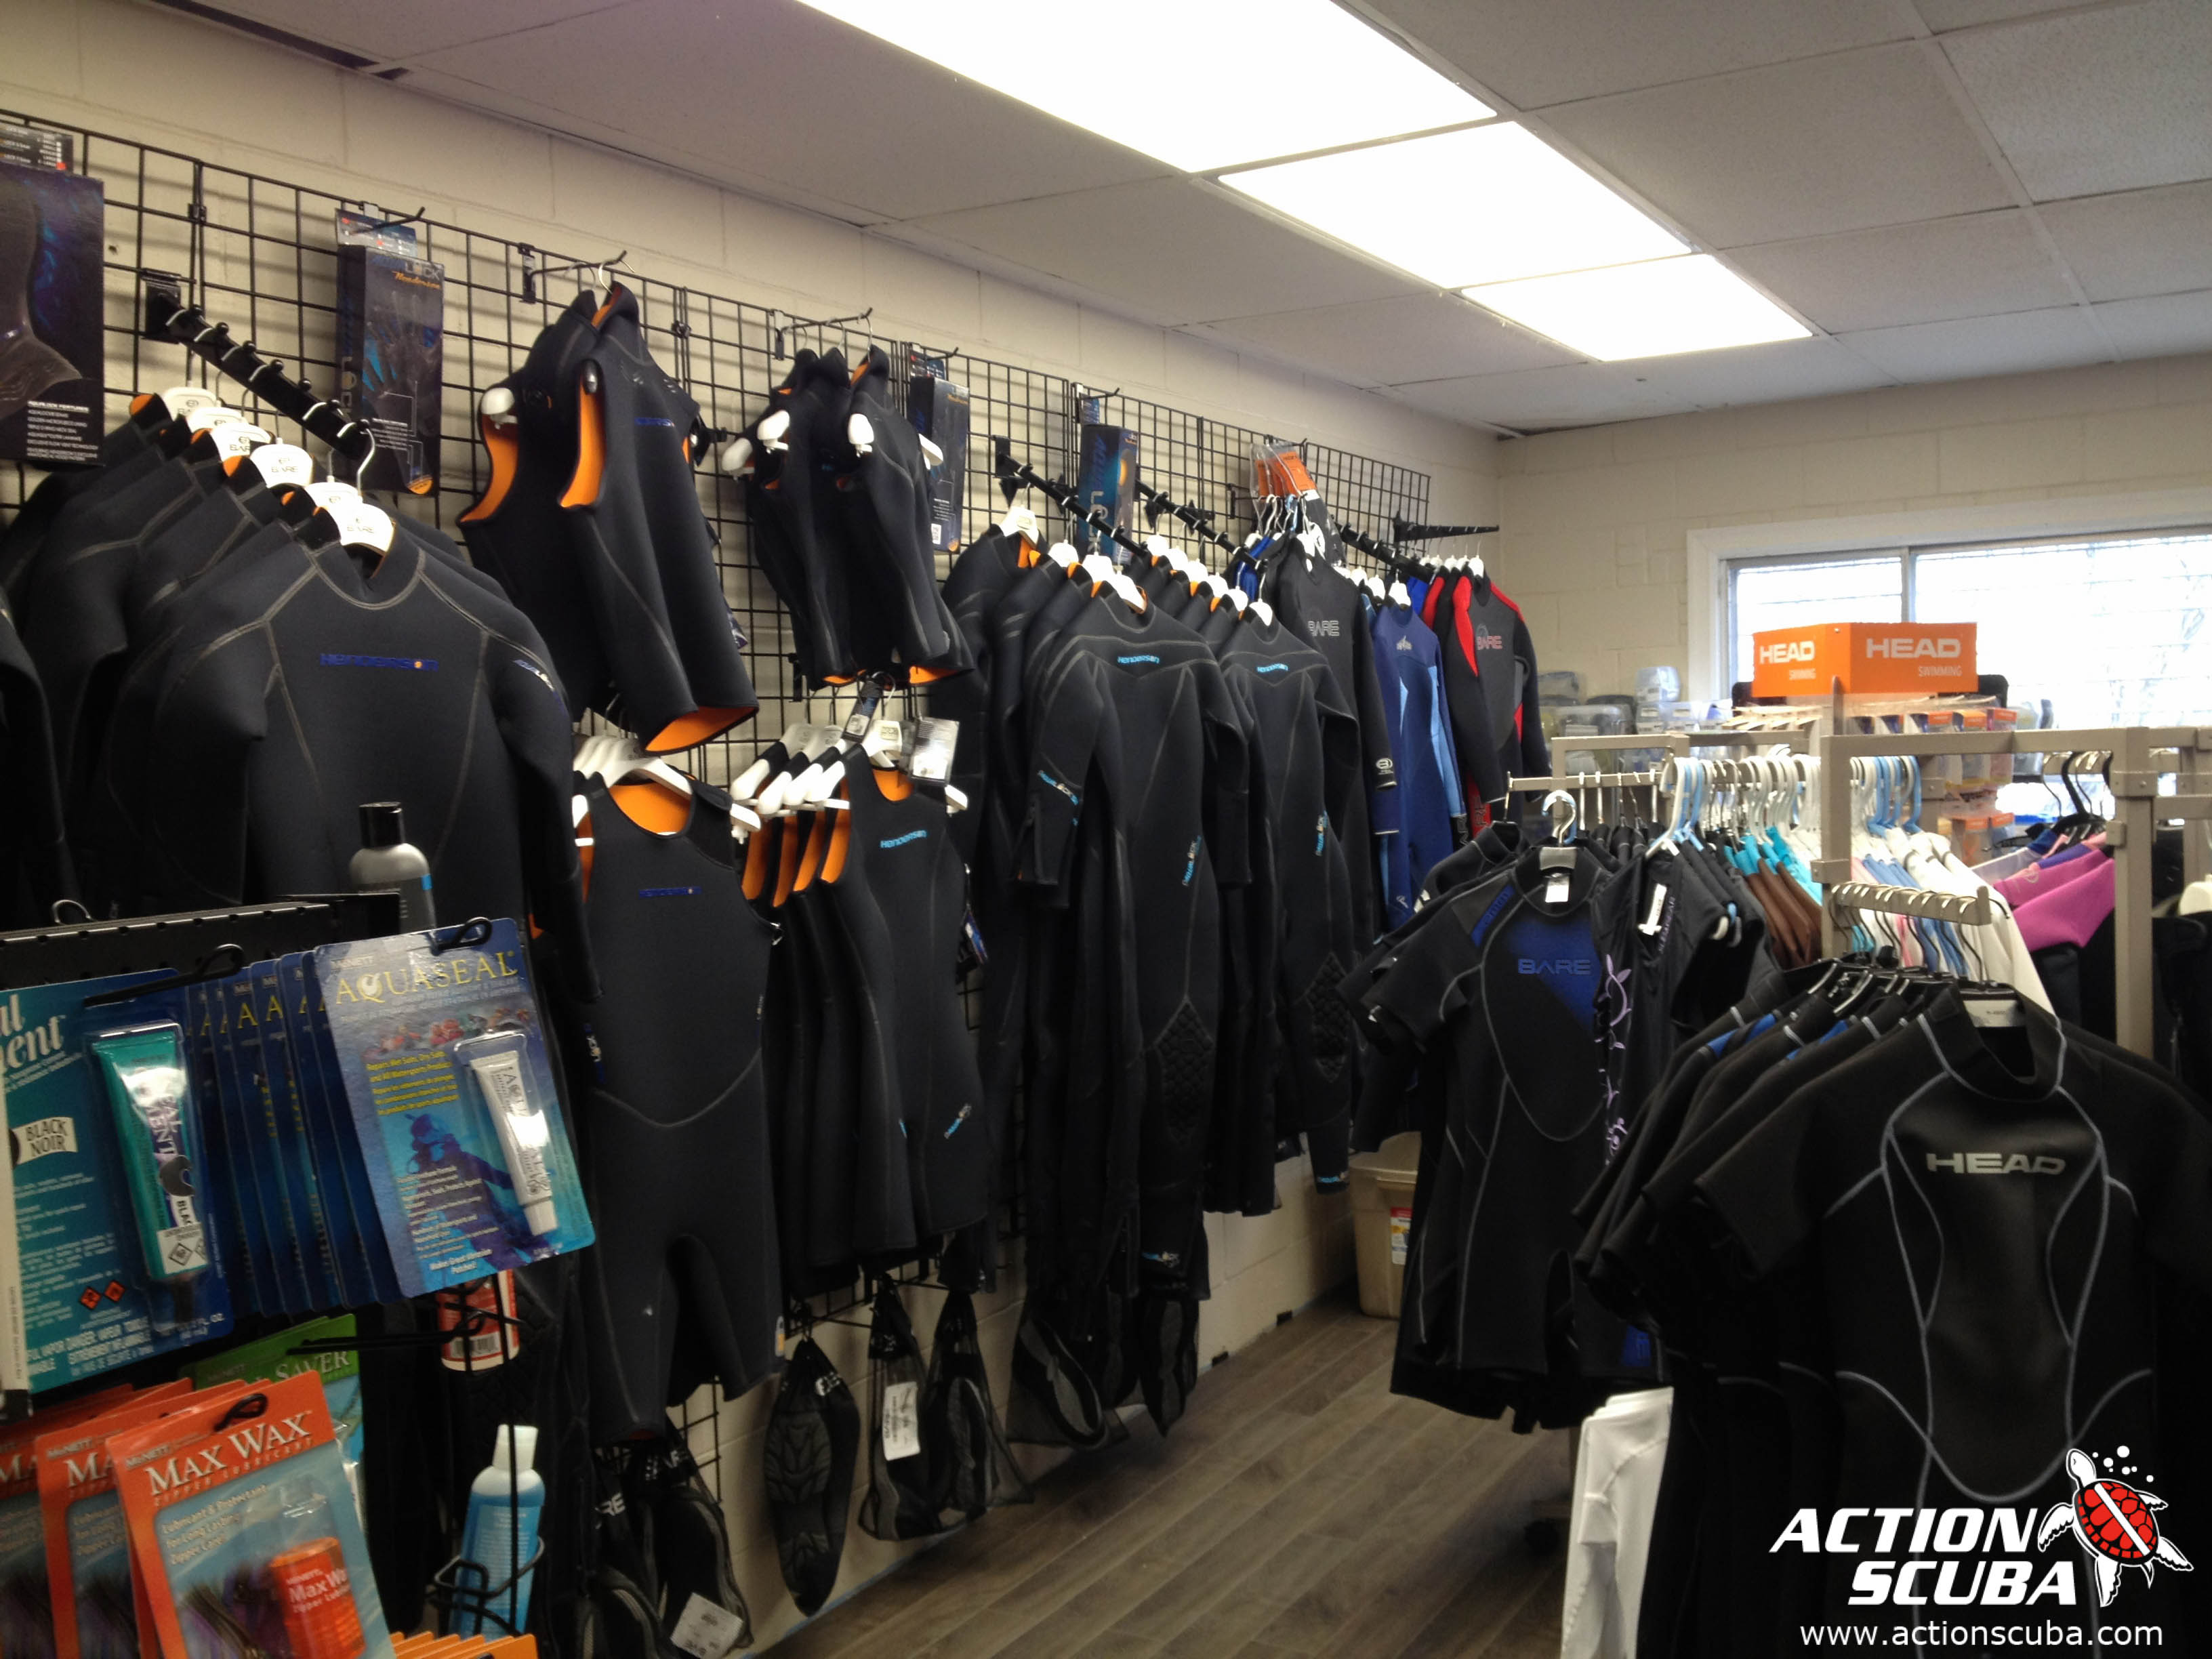 Action Scuba Montreal PADI dive shop and dive gear